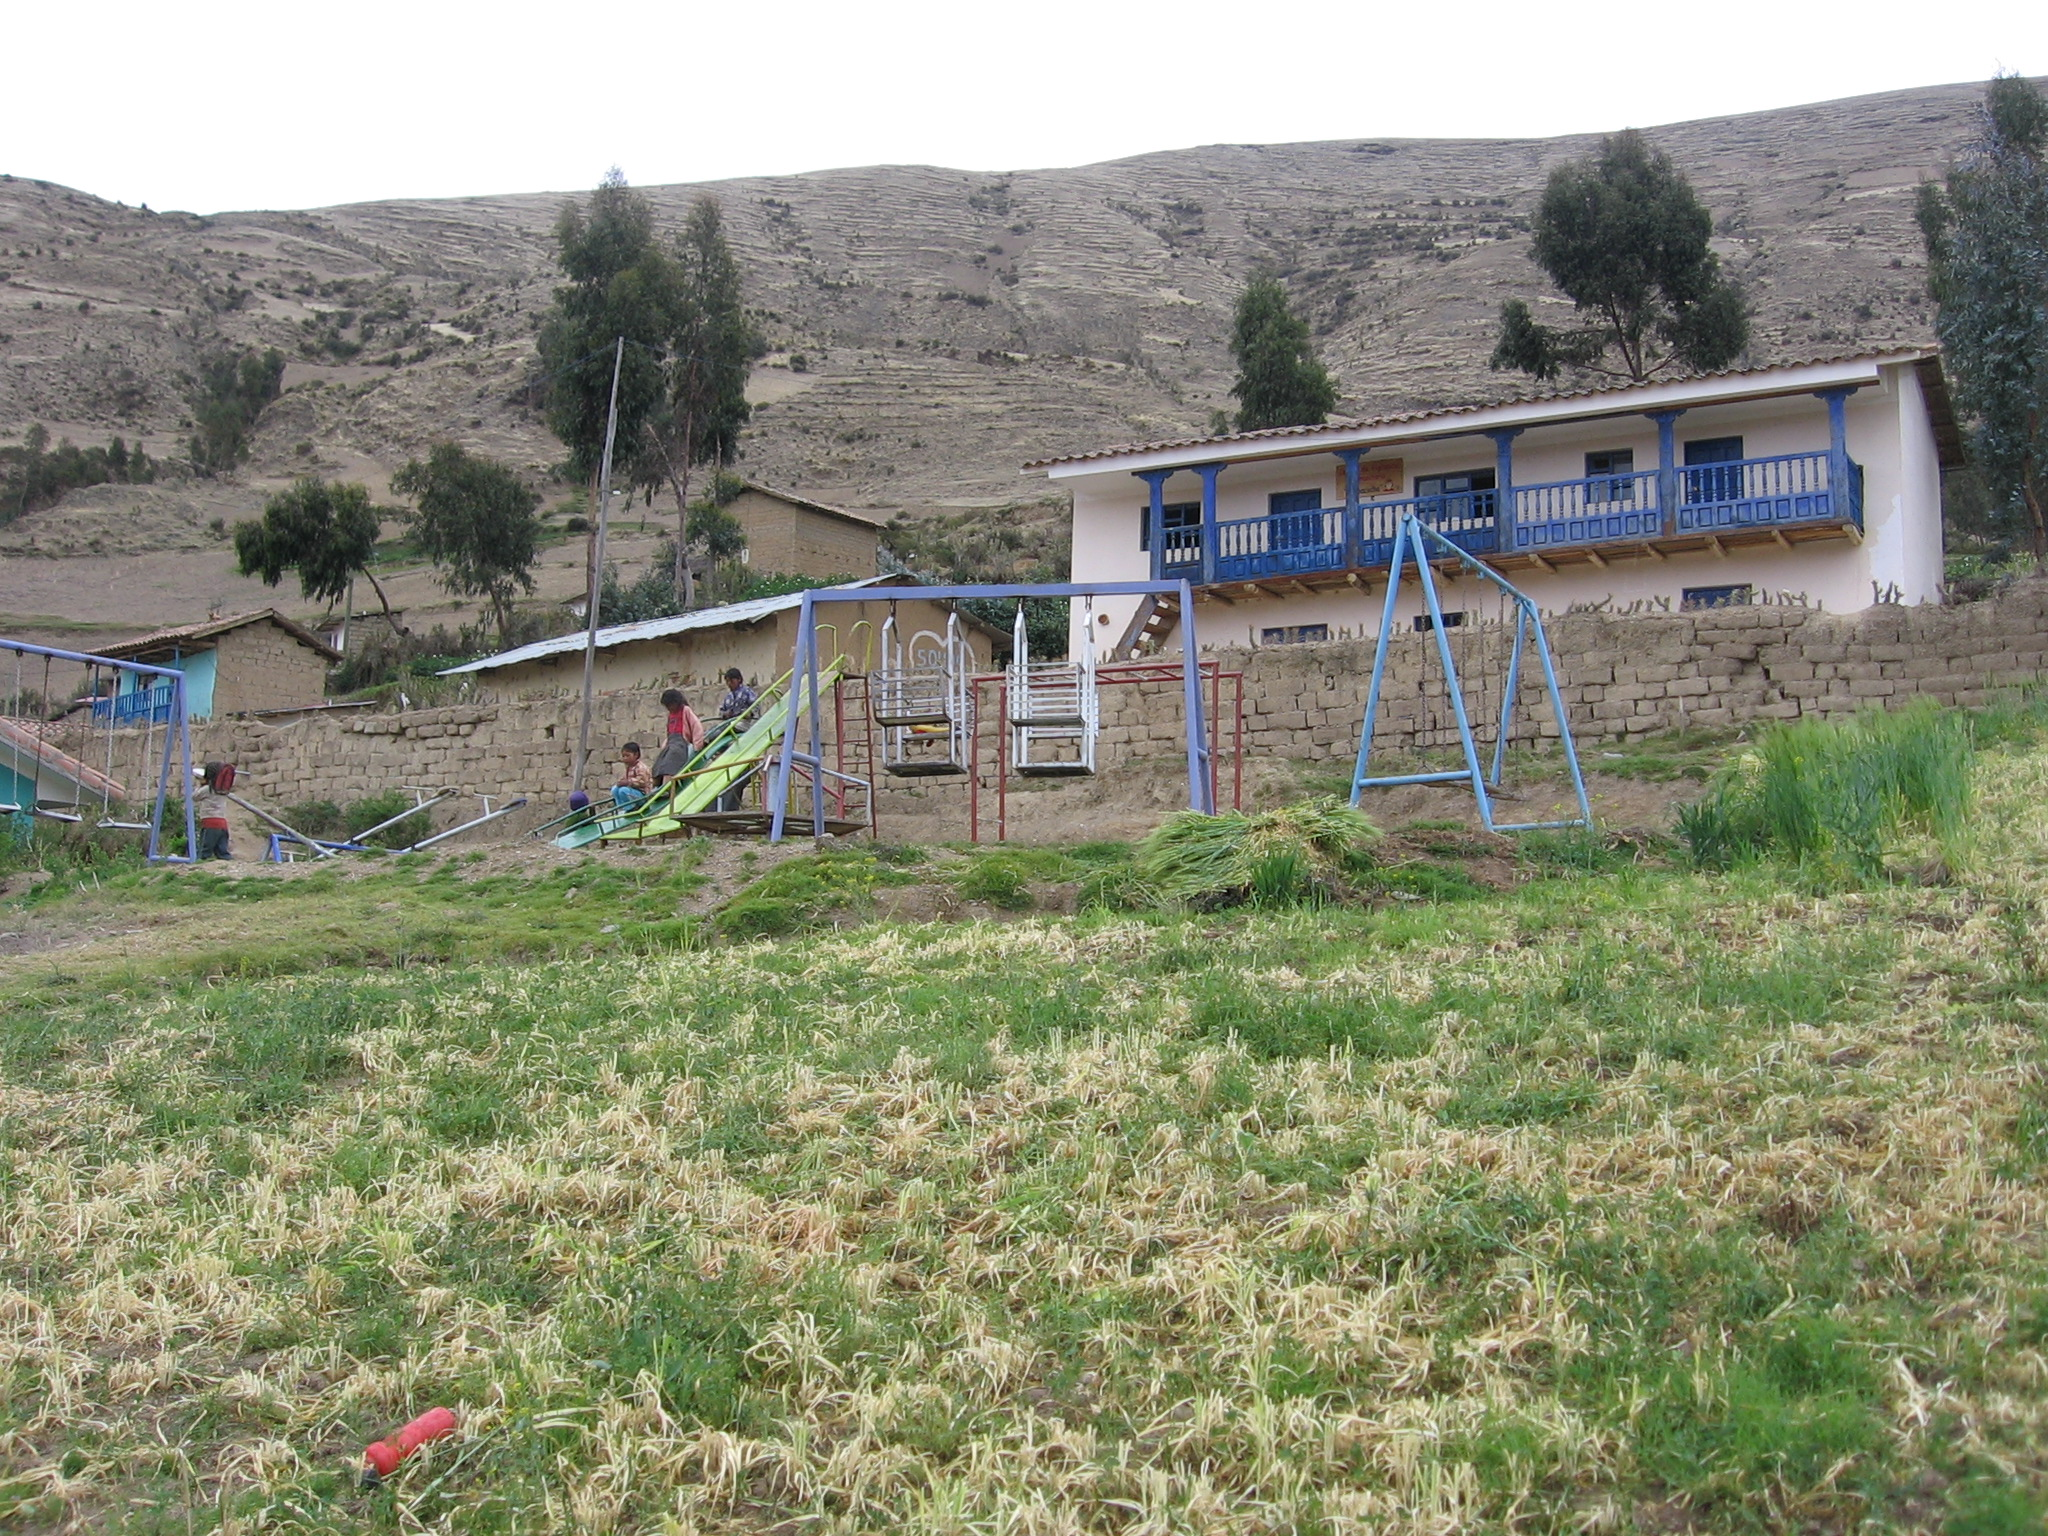 $2,500 USD to build a playground